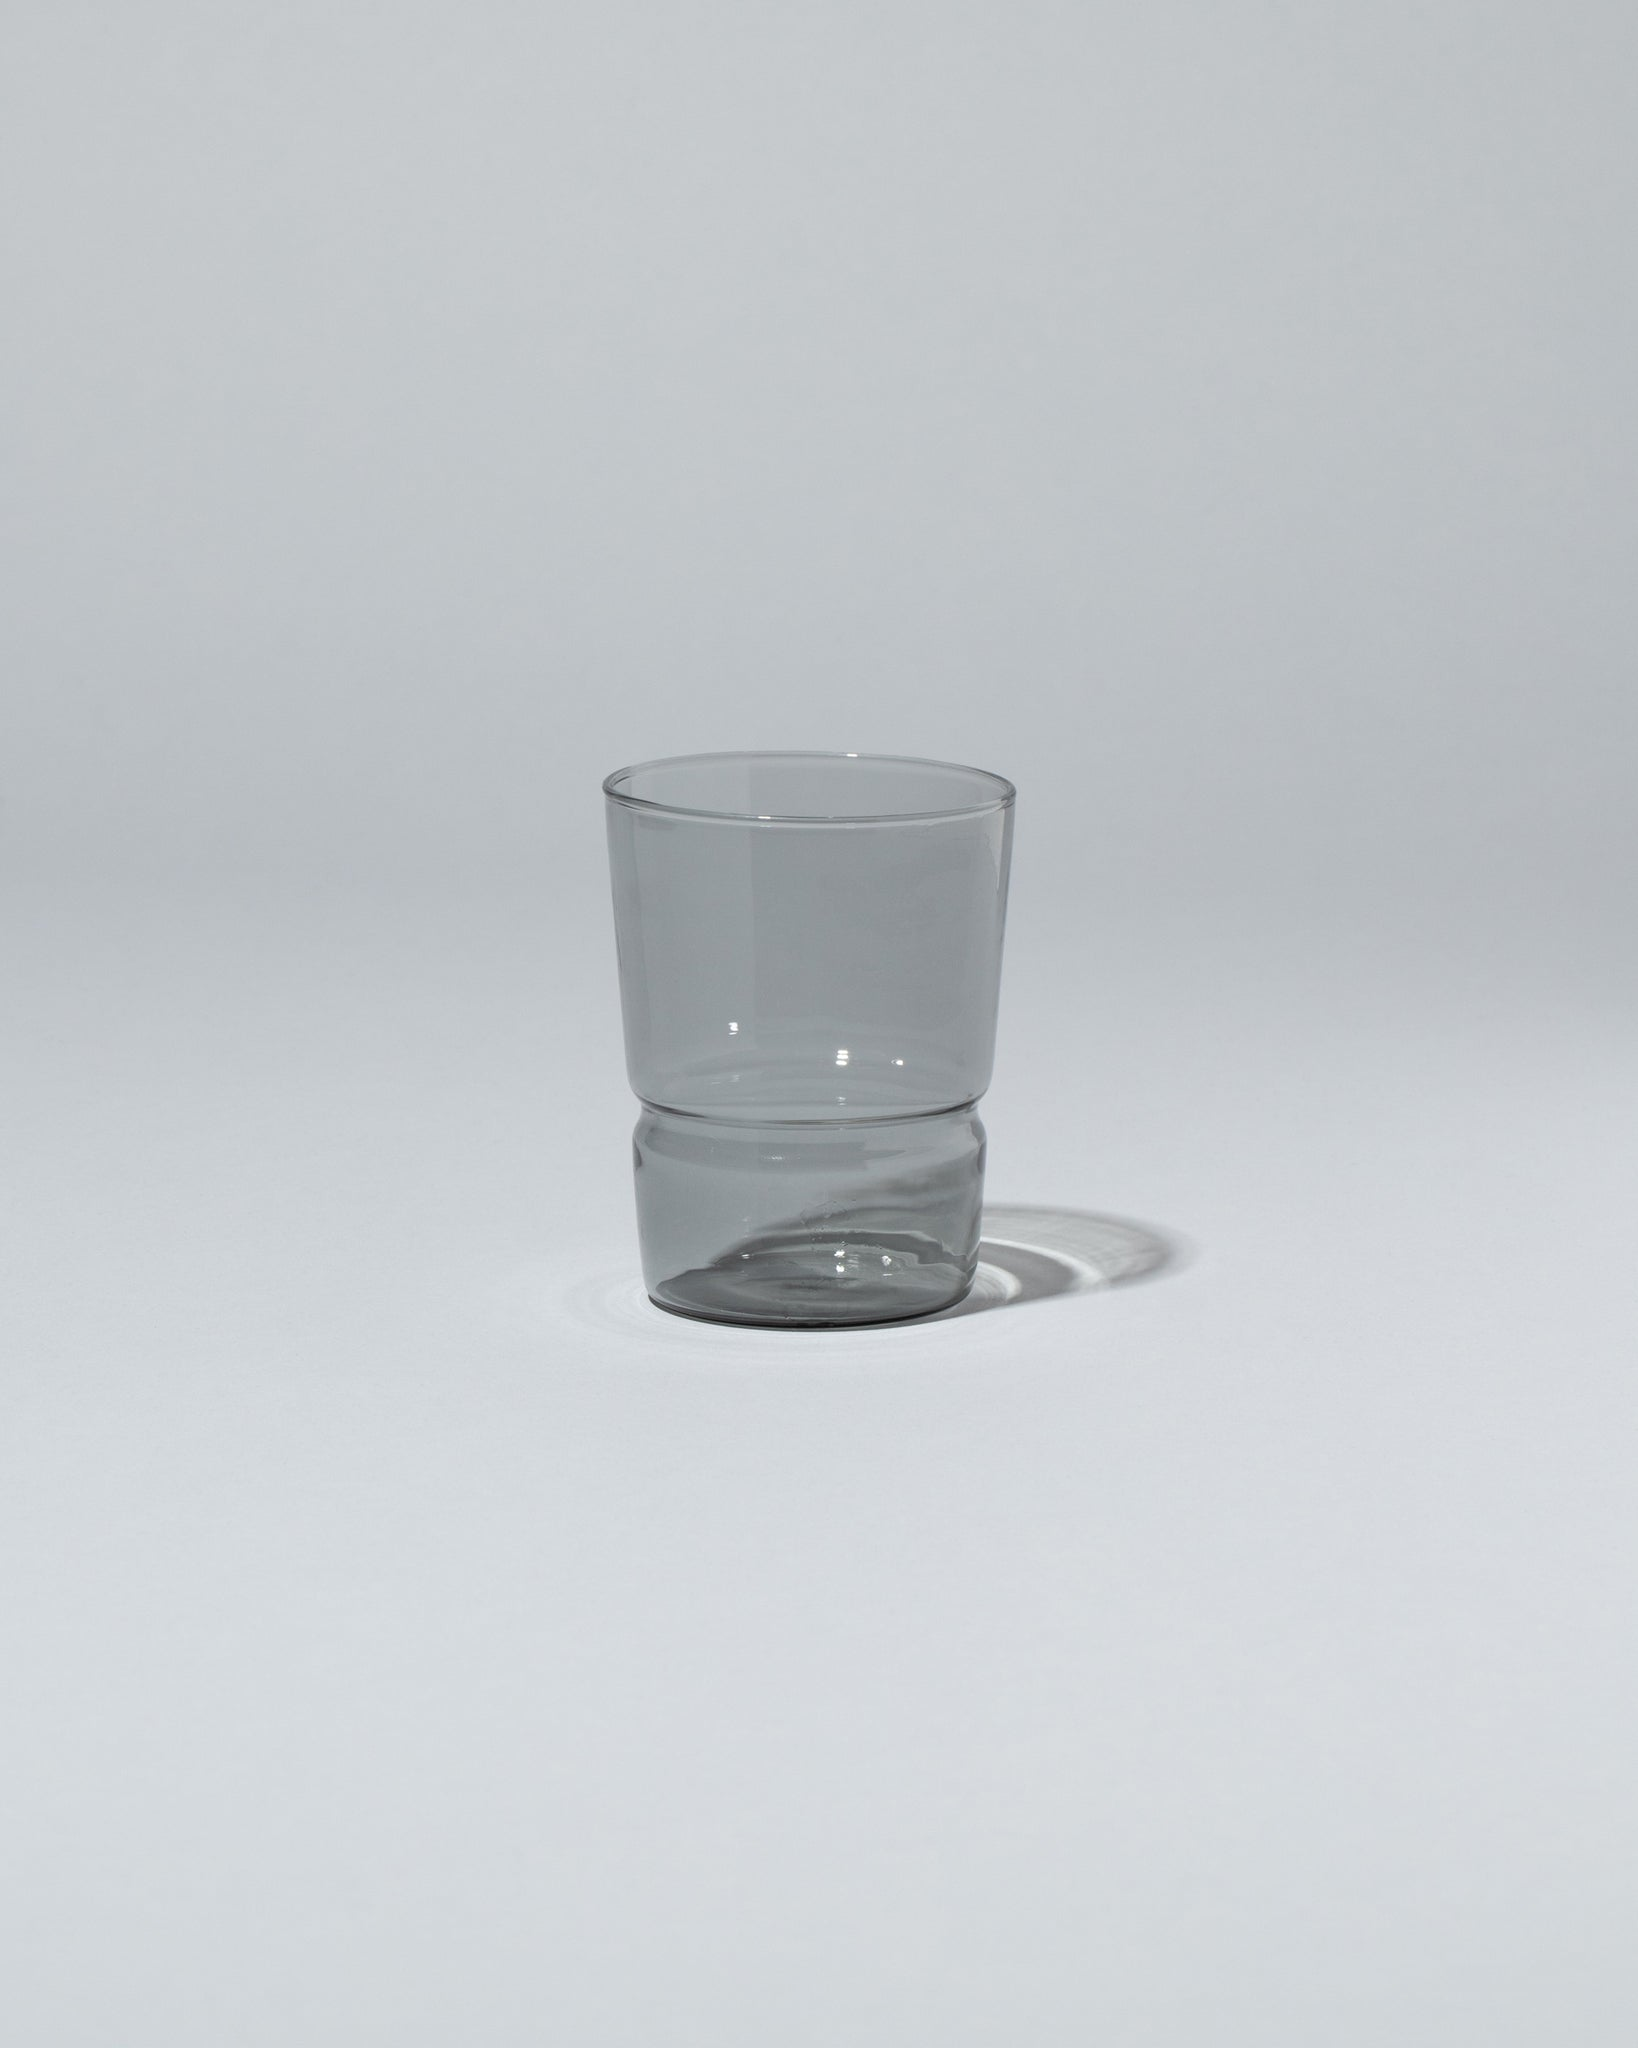 Ichendorf Milano TAP Glass on light color background